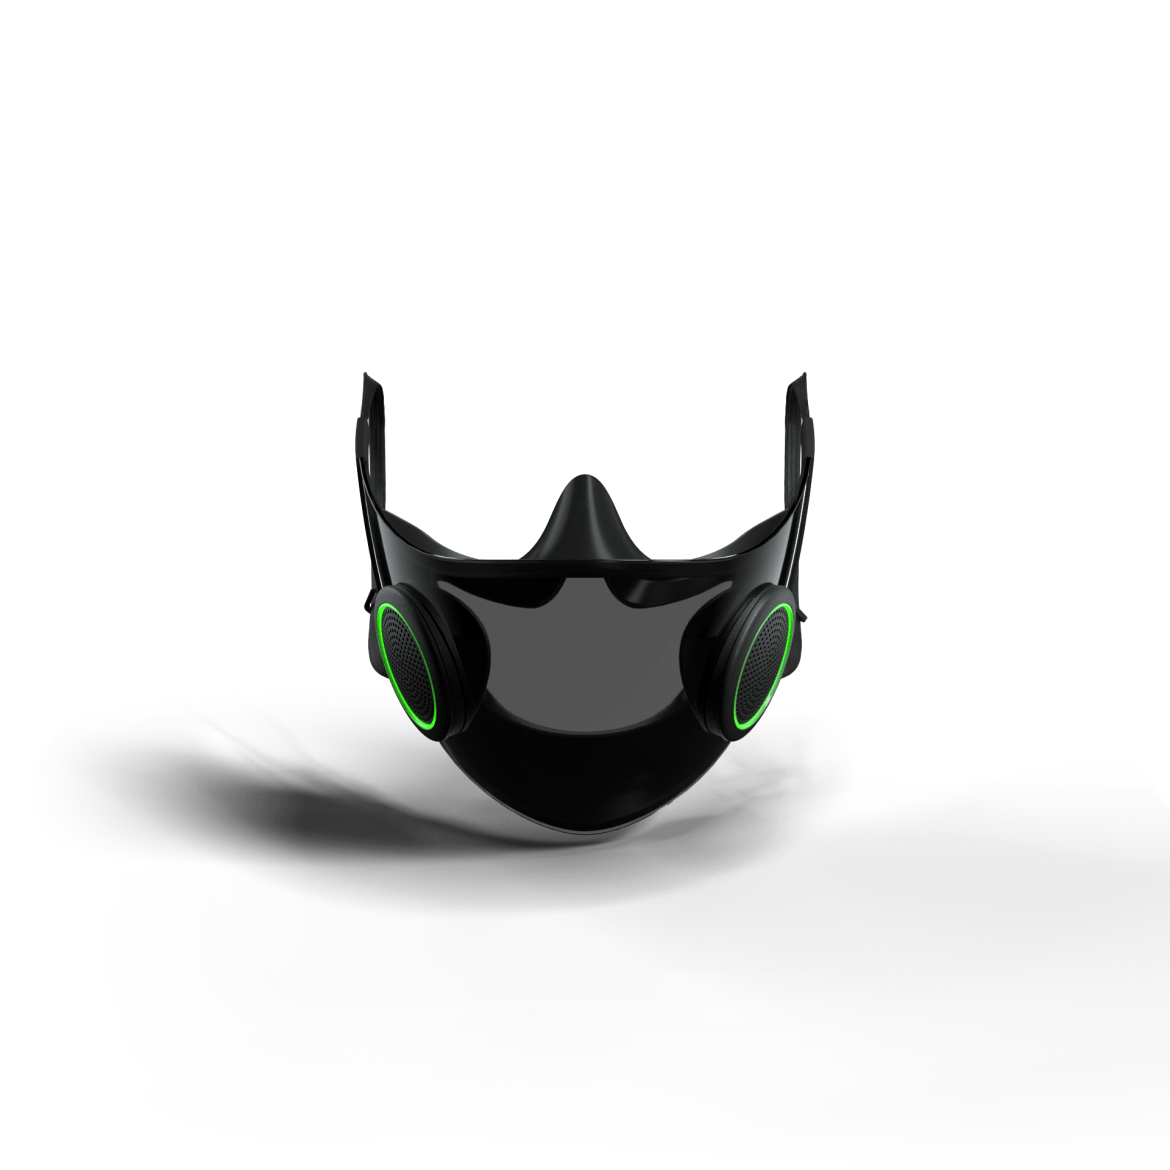 Razer Unveils Smart Face Mask and Gaming Chair Concept at CES 2021